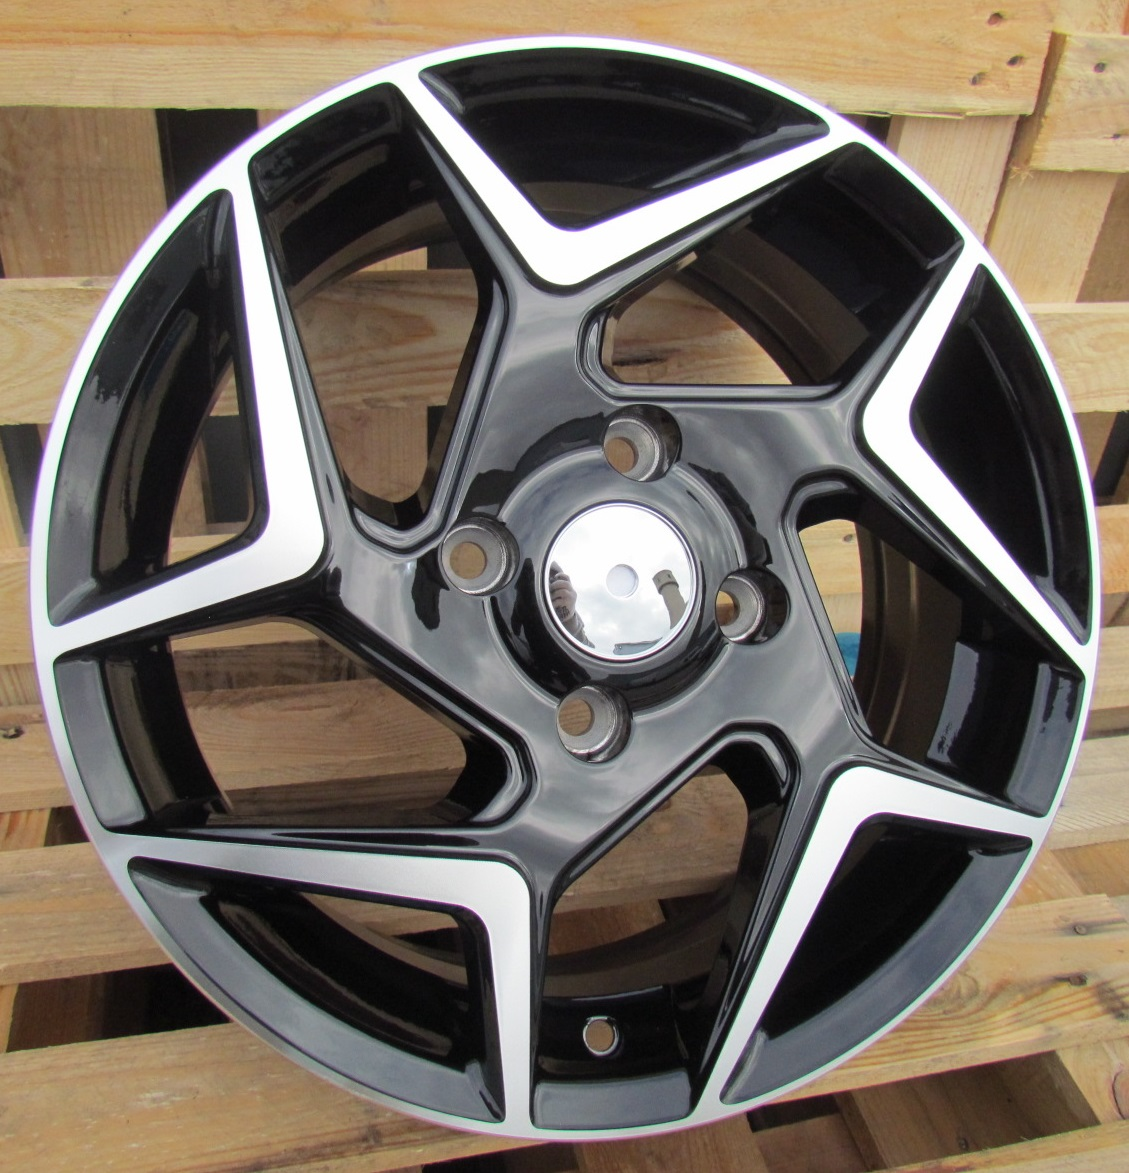 F15X6.5 4X108 ET40 63.3 XFE172 (BK5577) MB+POWDER COATING RWR FOR (+2eur) (R) 6.5x15 ET41 4x108